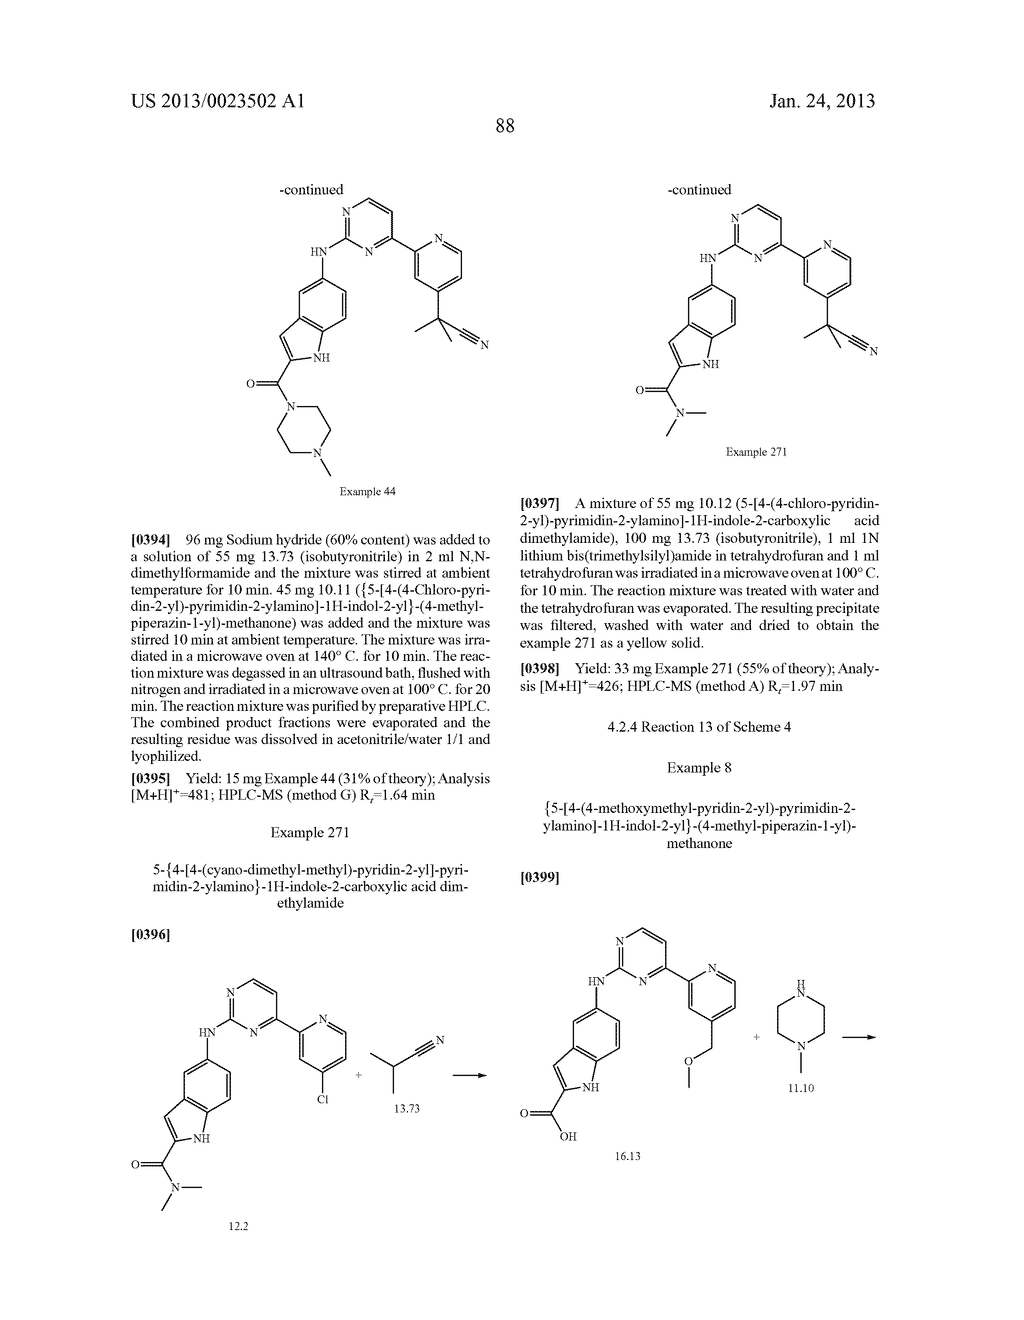 SUBSTITUTED PYRIDINYL-PYRIMIDINES AND THEIR USE AS MEDICAMENTS - diagram, schematic, and image 89